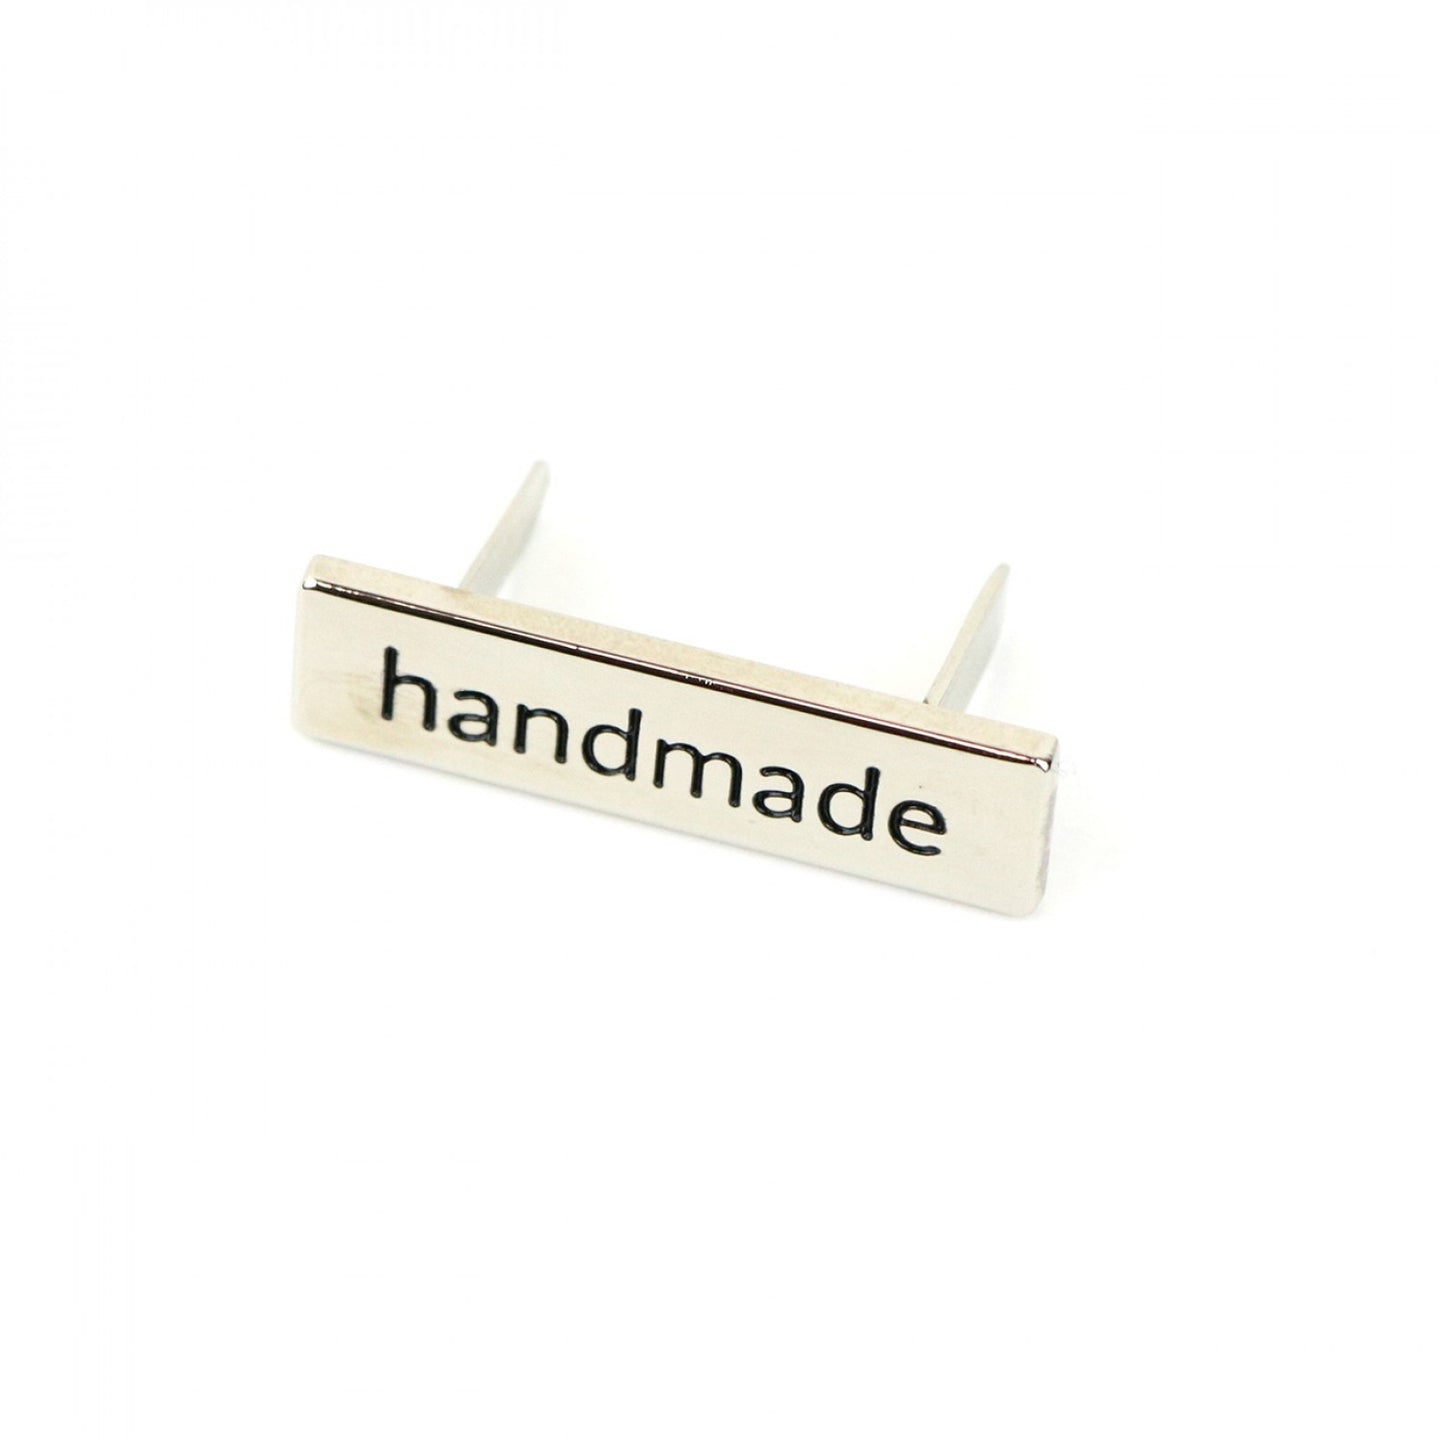 Metal Bag Label - Handmade in Serif - Nickel